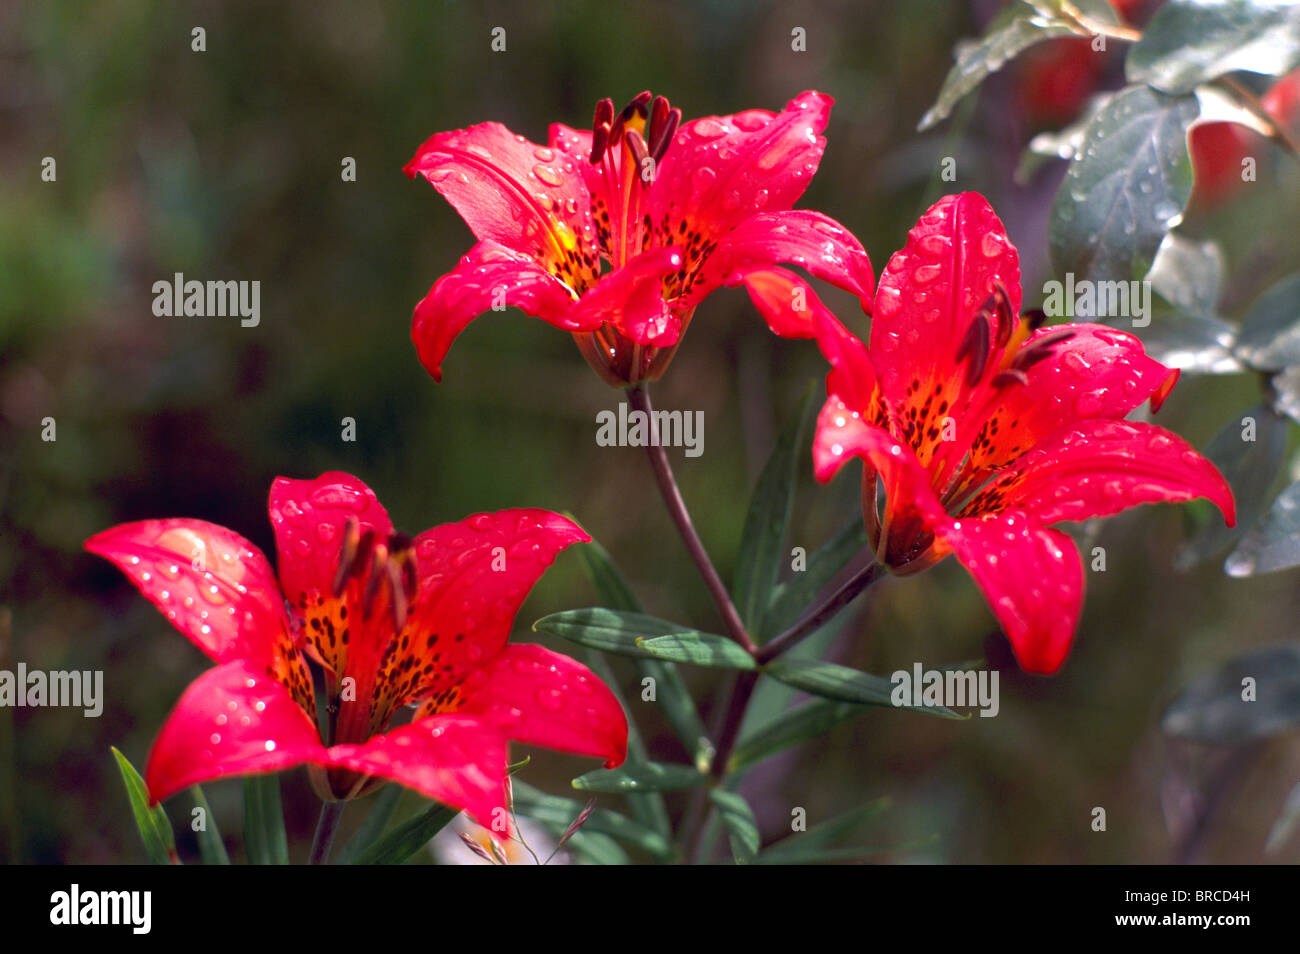 Wood Lily Lilium Philadelphicum In Bloom Red Wild Flowers Stock